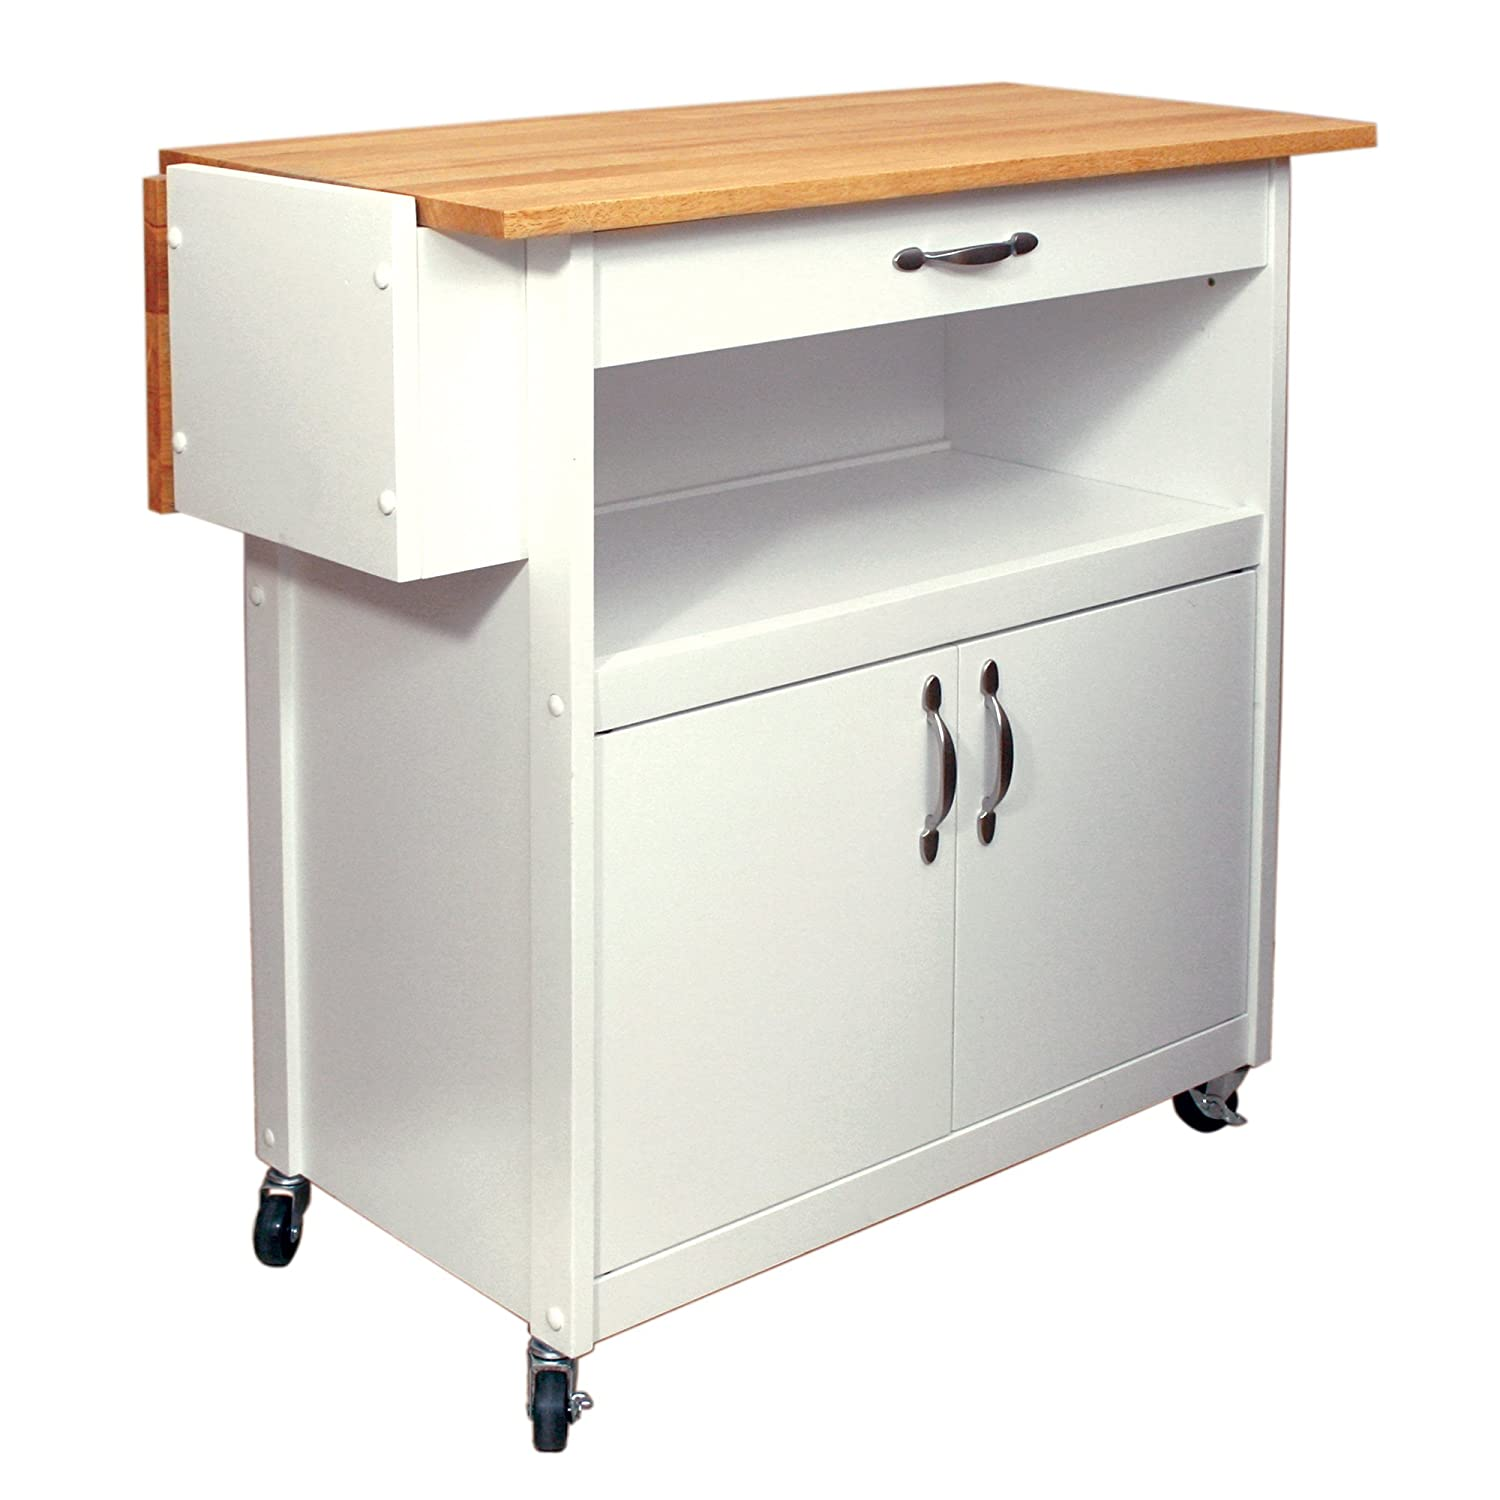 Amazon.com - Catskill Craftsmen Drop Leaf Utility Cart - Kitchen ...